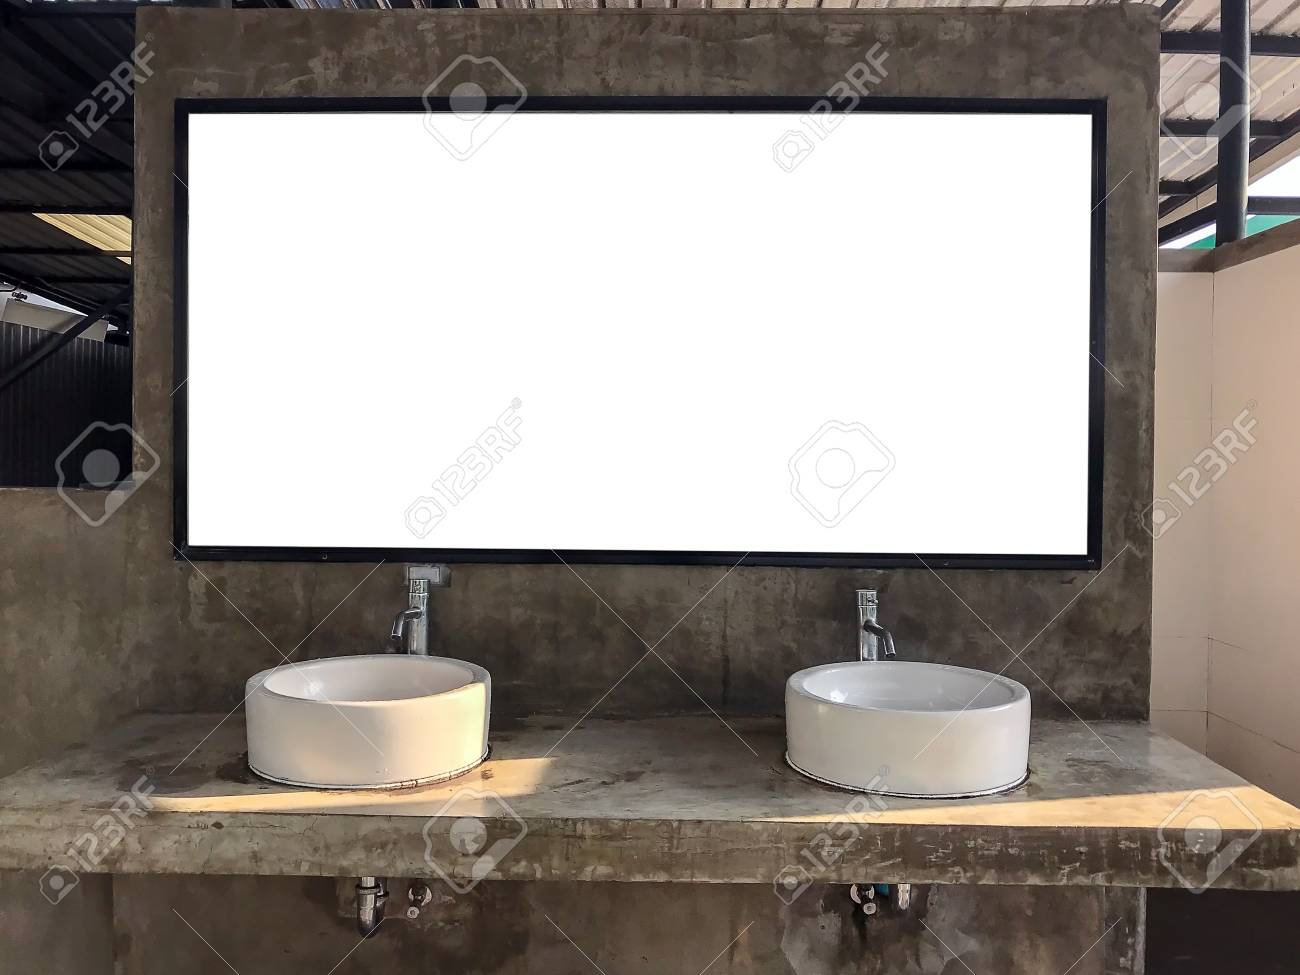 ceramic basins and mirrors on bare cement are popular public